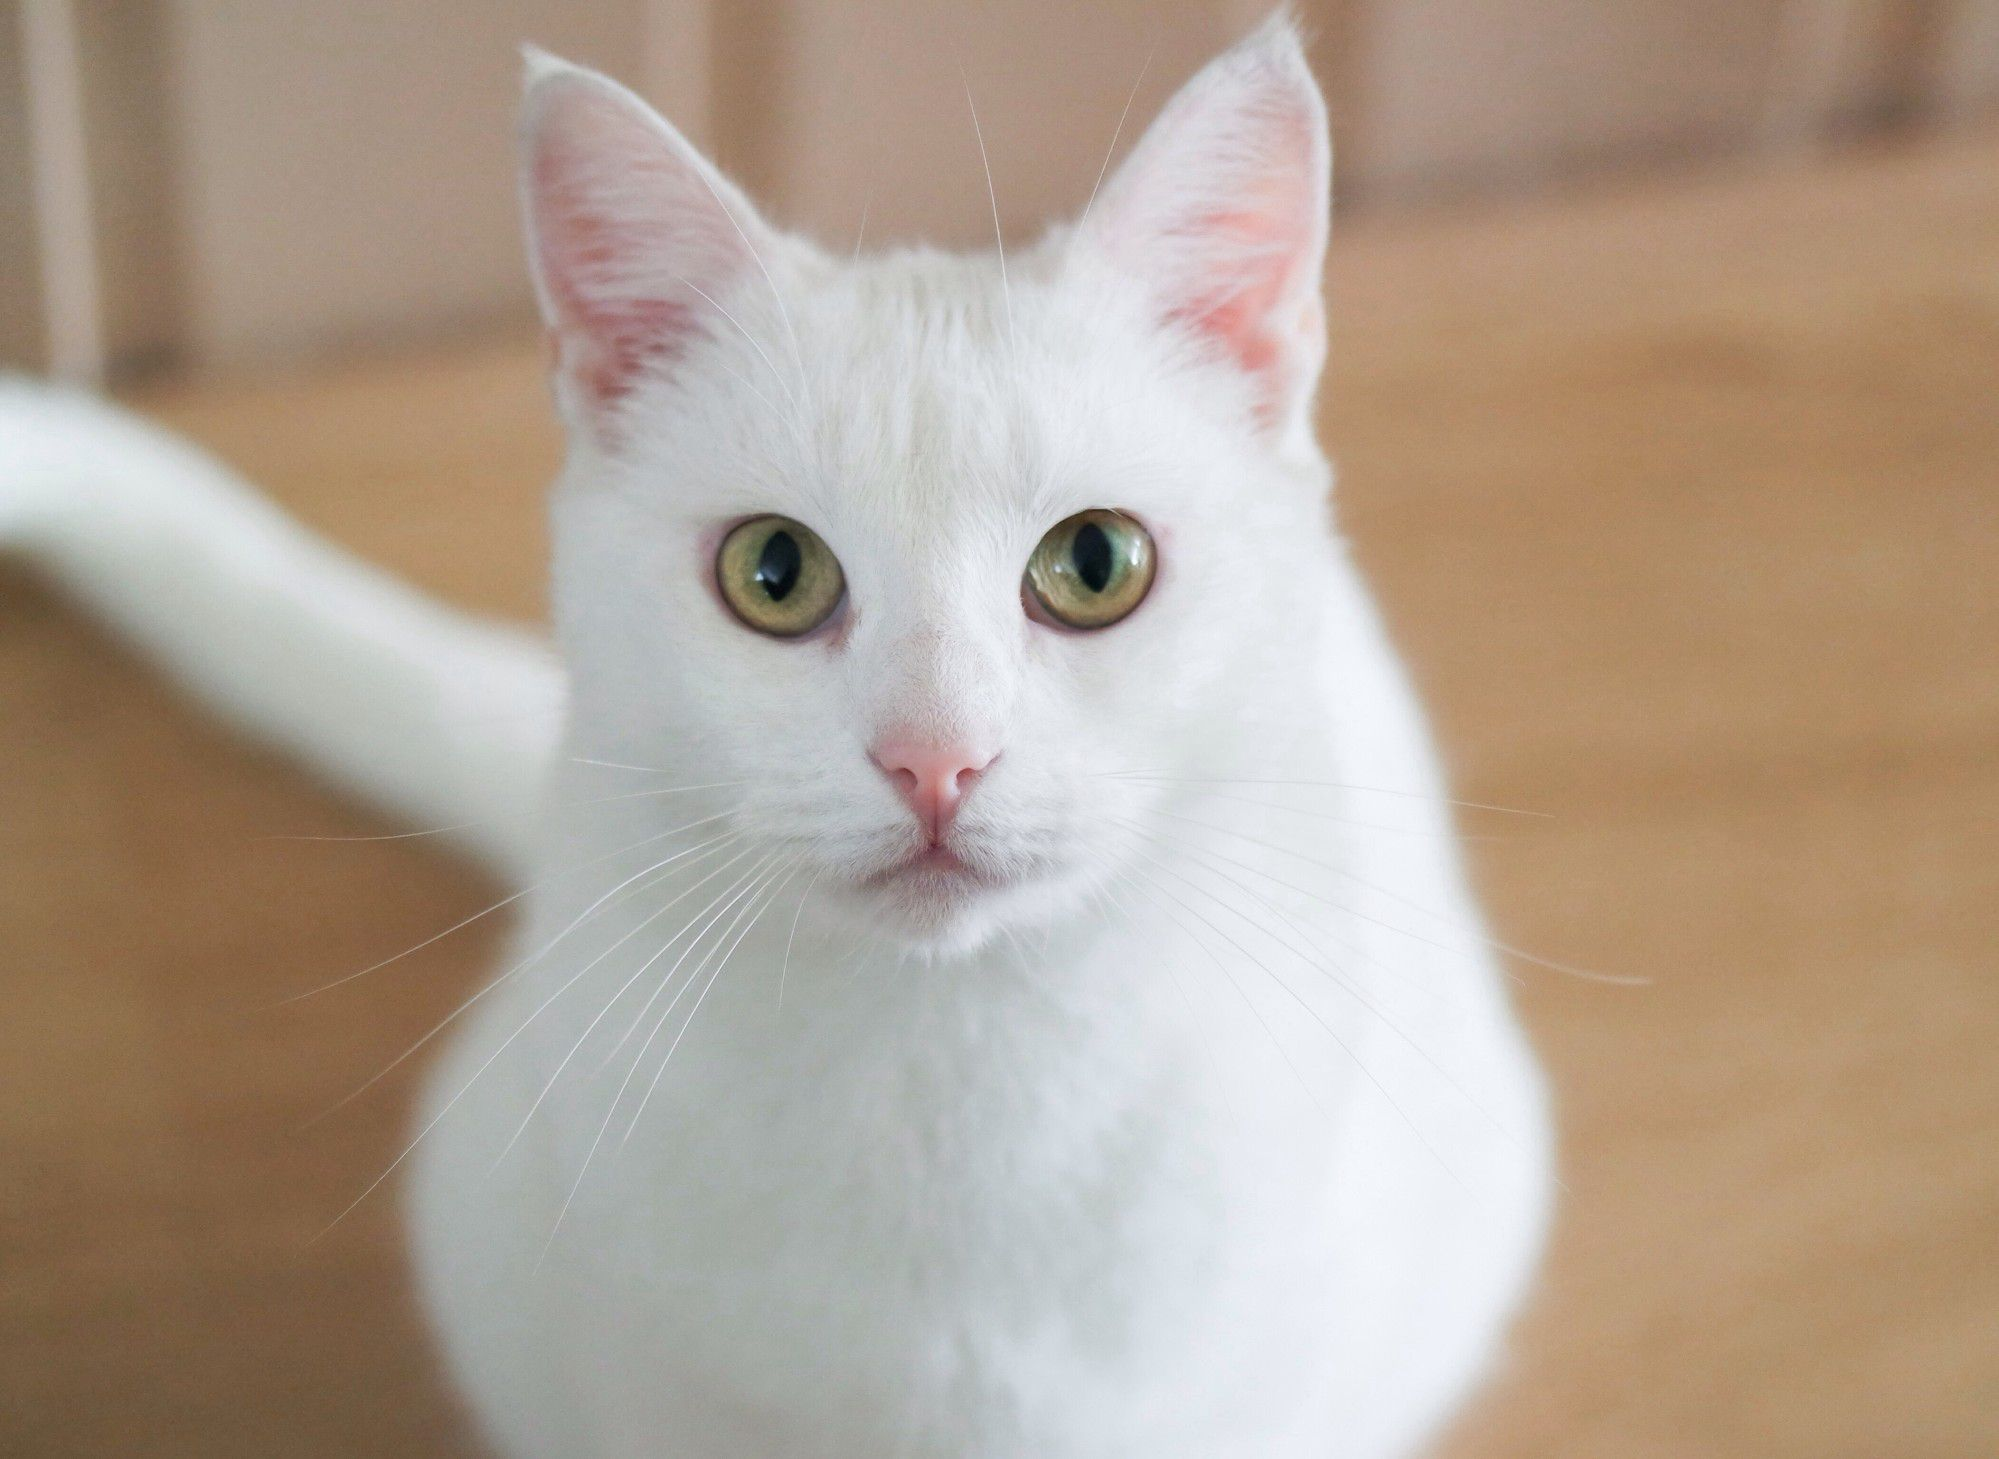 White Cat Breeds Profile - White Cats